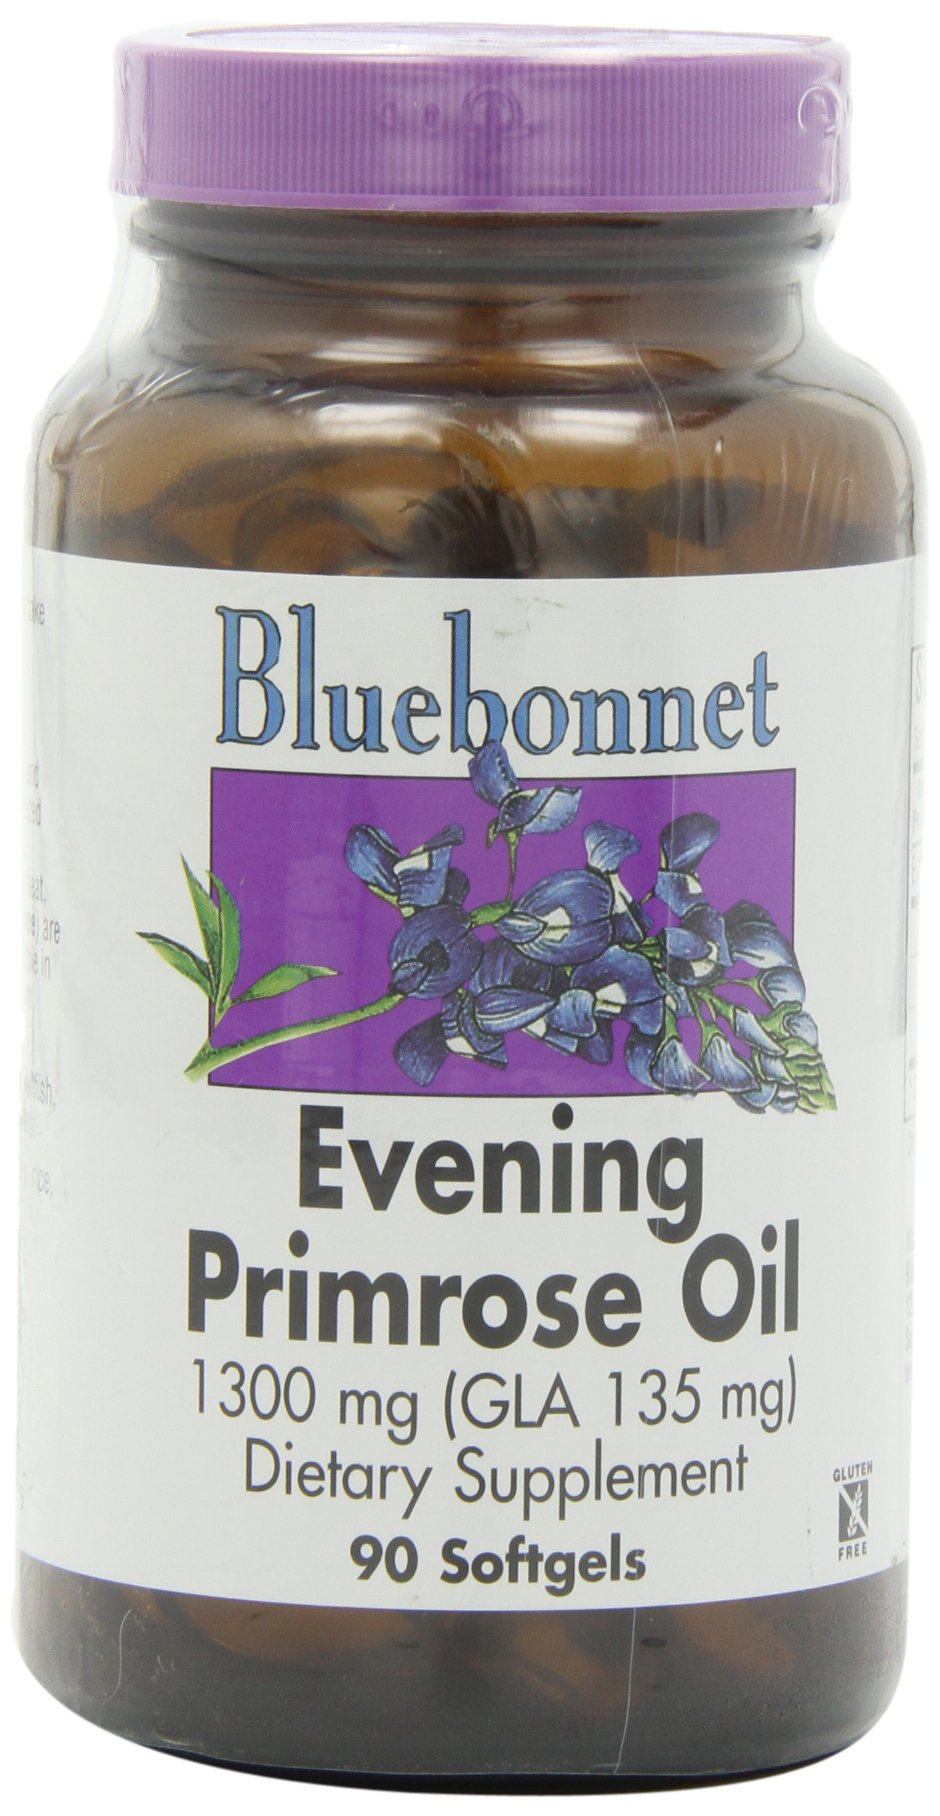 BlueBonnet Evening Primrose Oil 1300 mg (90 softgels) [Health and Beauty]